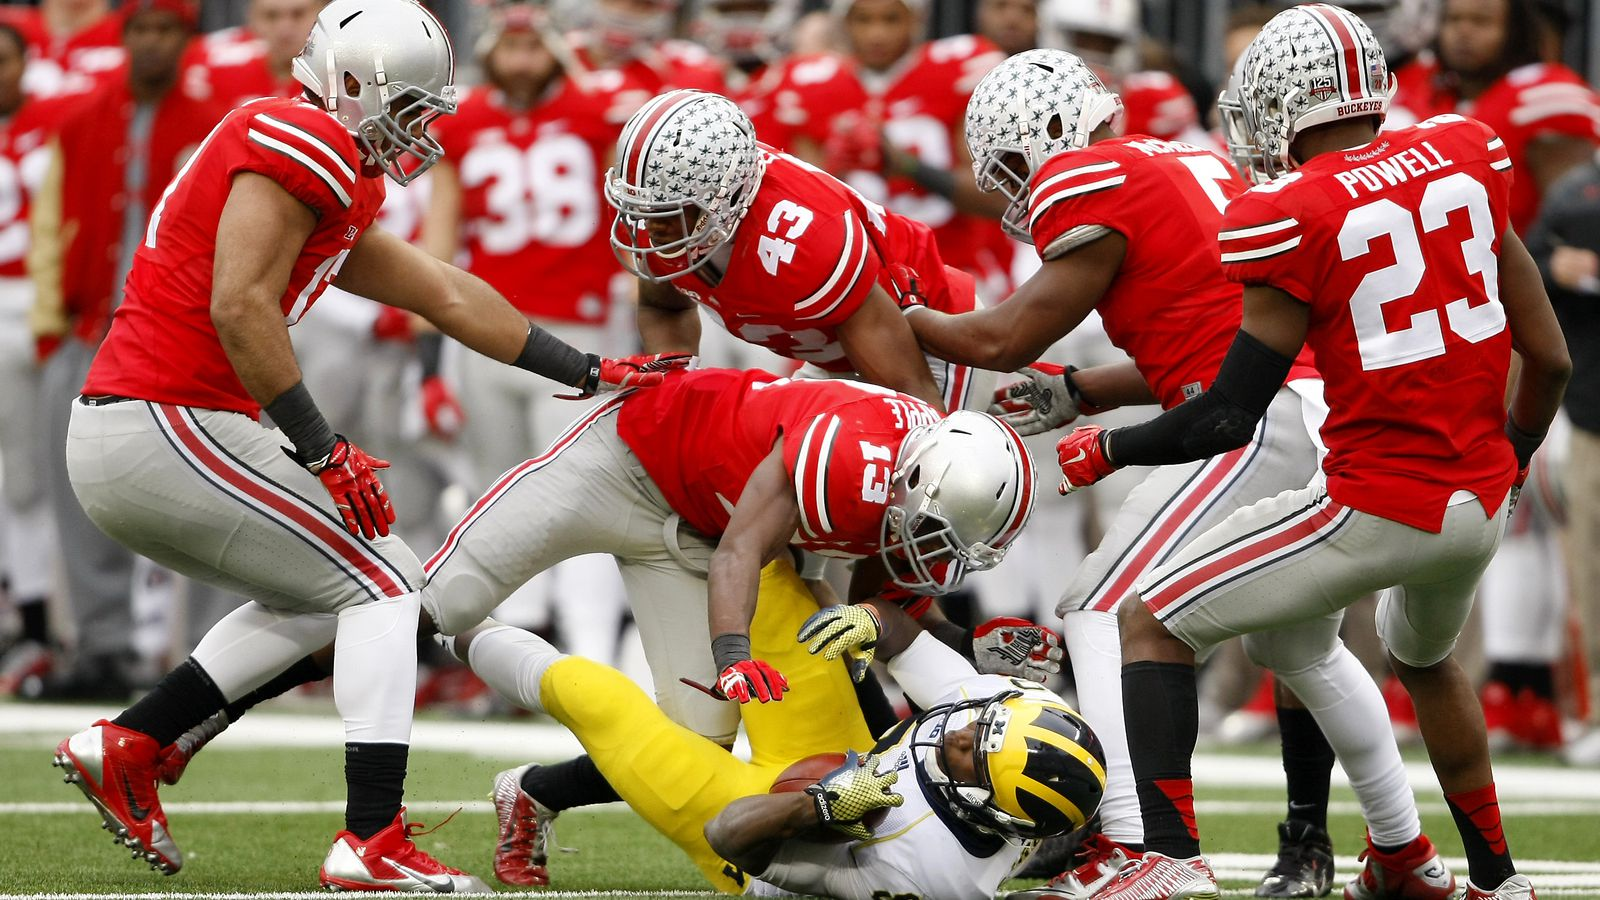 Michigan vs. Ohio State Gets the Taiwanese Animation Treatment